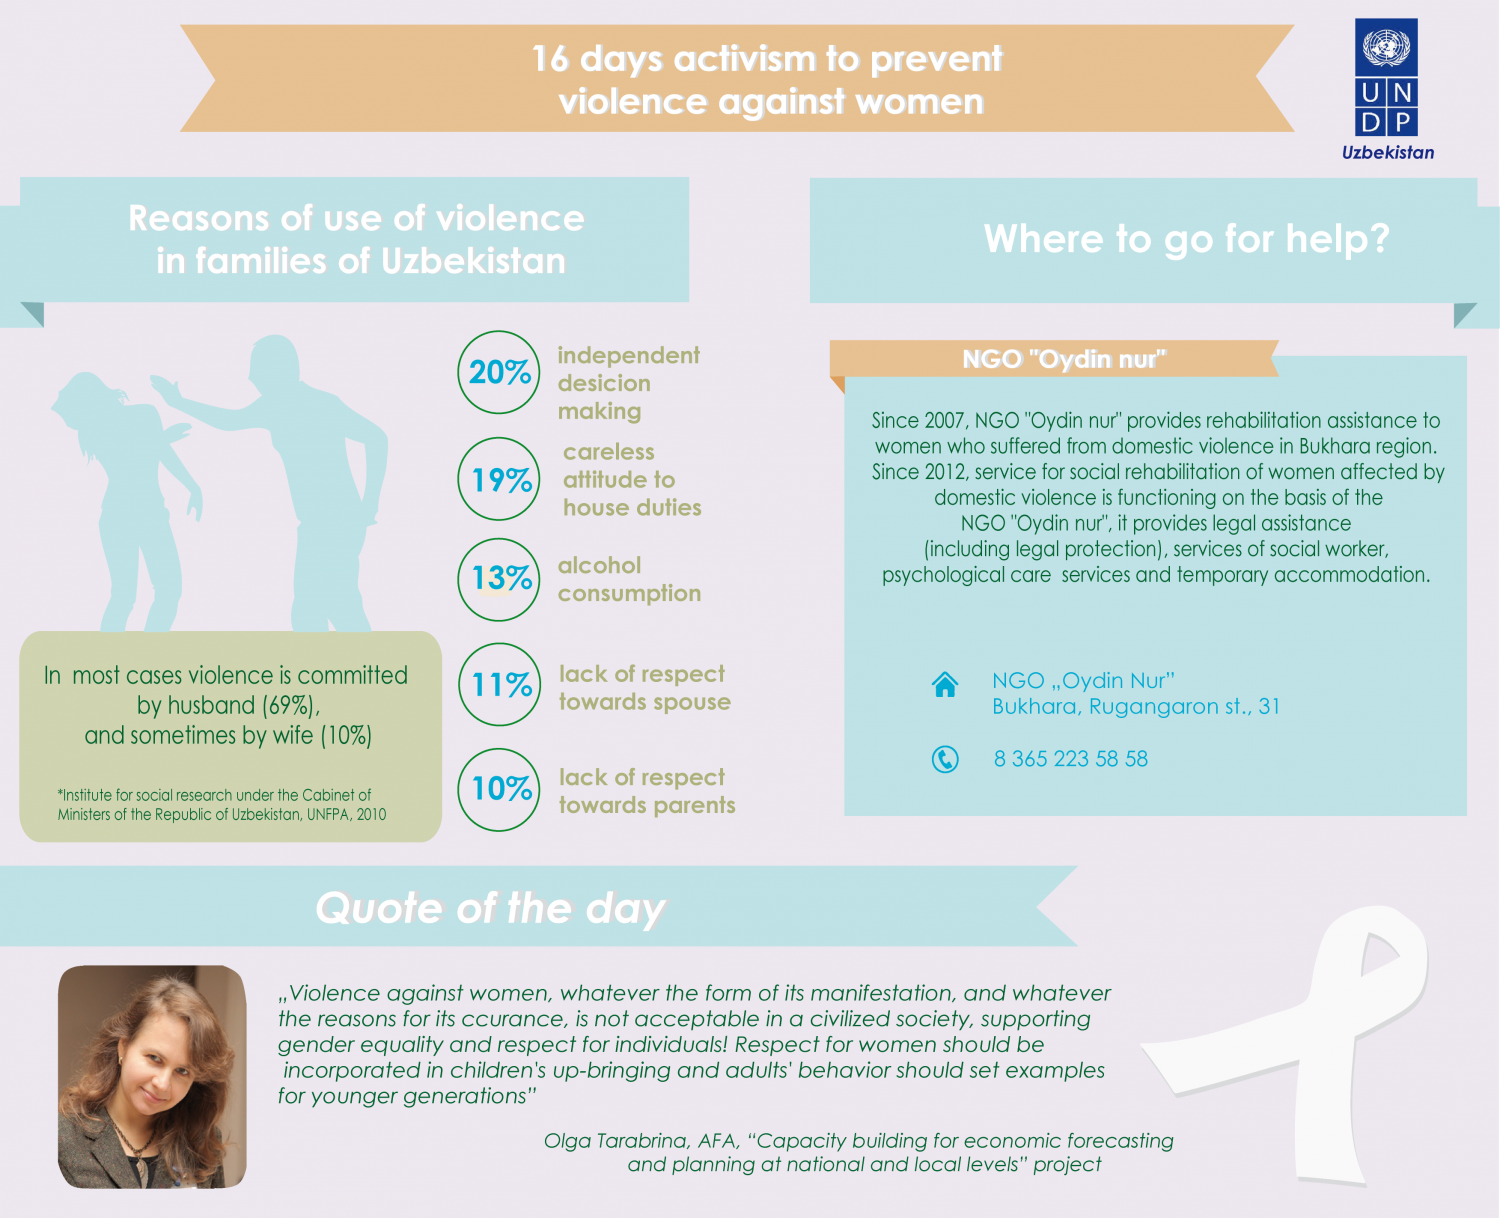 Reasons of use of violence in families in Uzbekistan Infographic